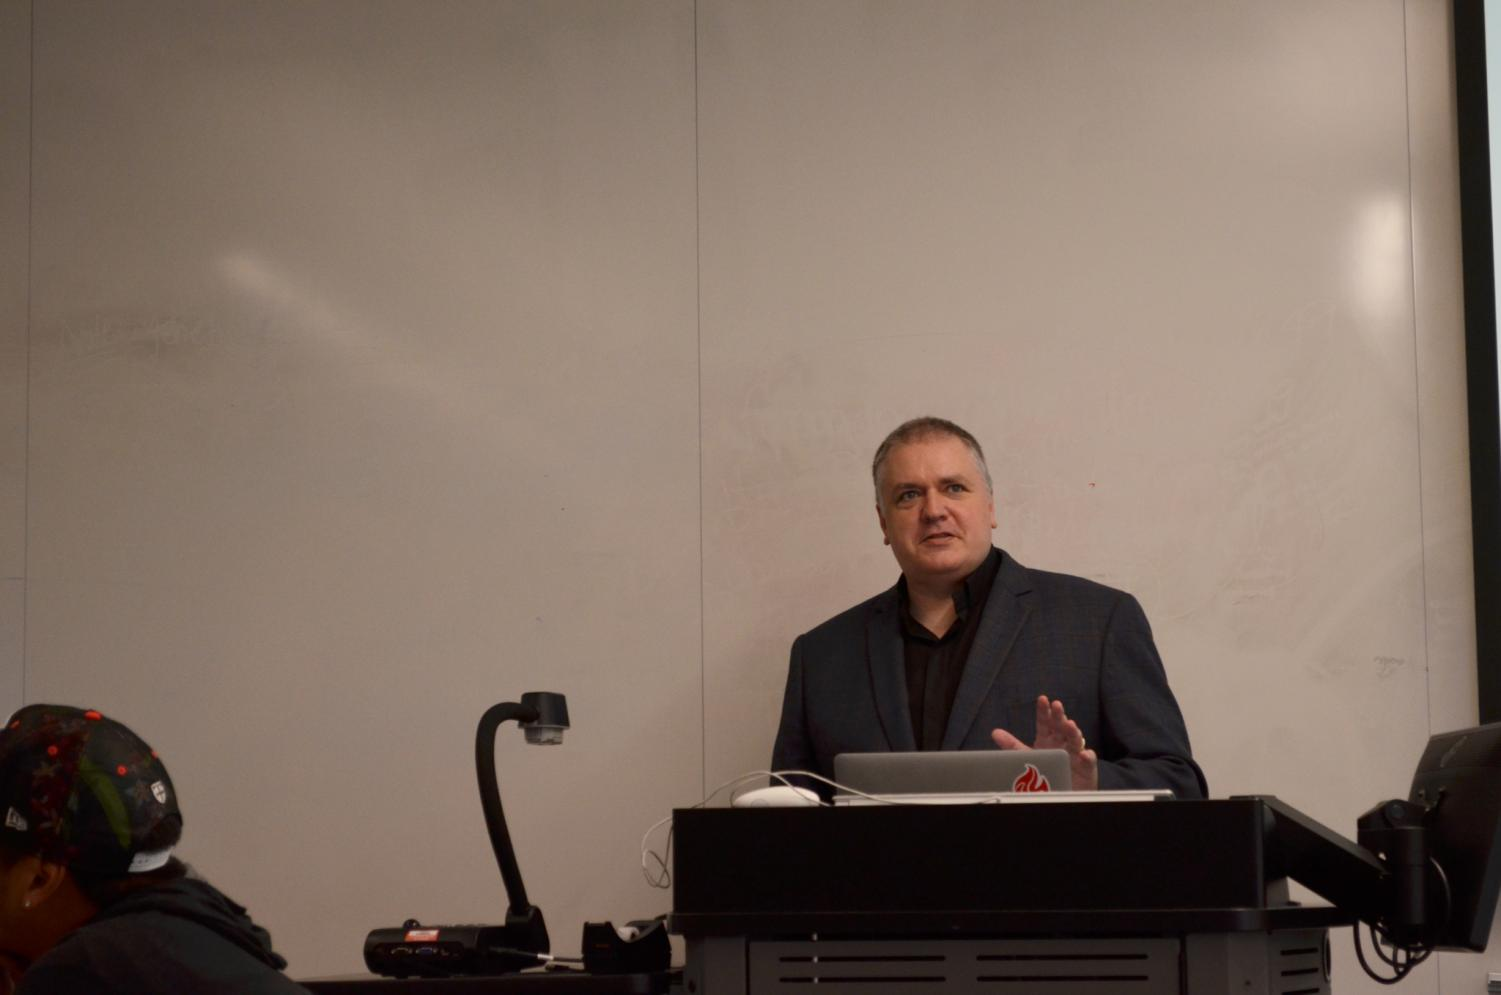 The Rev. Dr. Chuck Currie will miss a portion of this year, as he will be on medical leave from December to August.